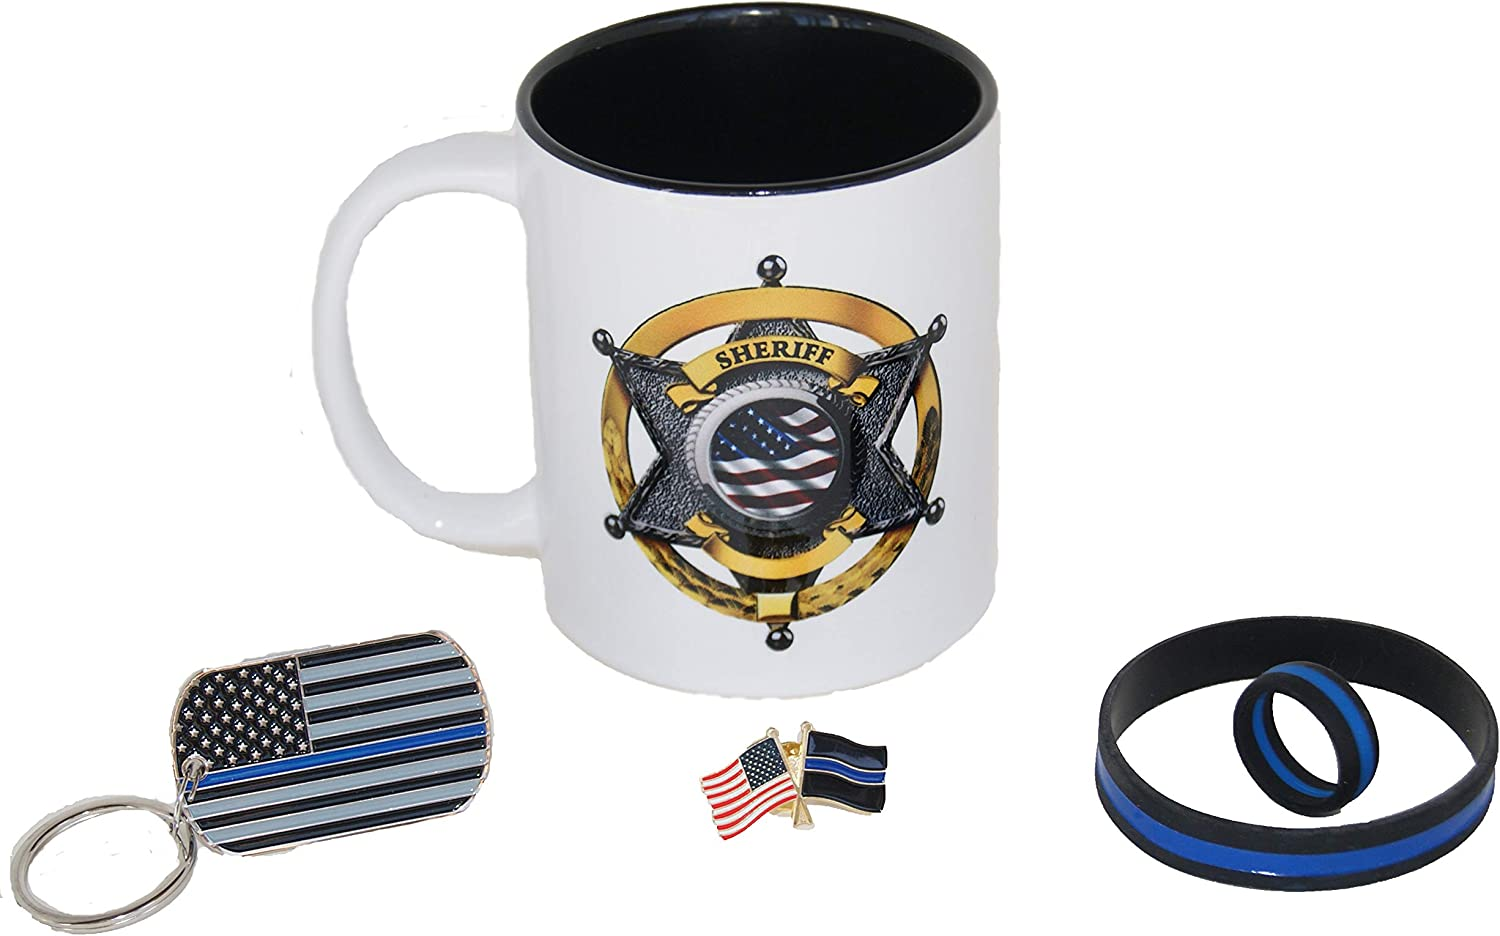 Sheriff Badge Coffee Cup | Sheriff's Office Gift | Police Gift | Thin Blue Line Key Chain | Police Court Lapel Pin | Police Wristbands | Police Gift | Deputy Sheriff Coffee Mug